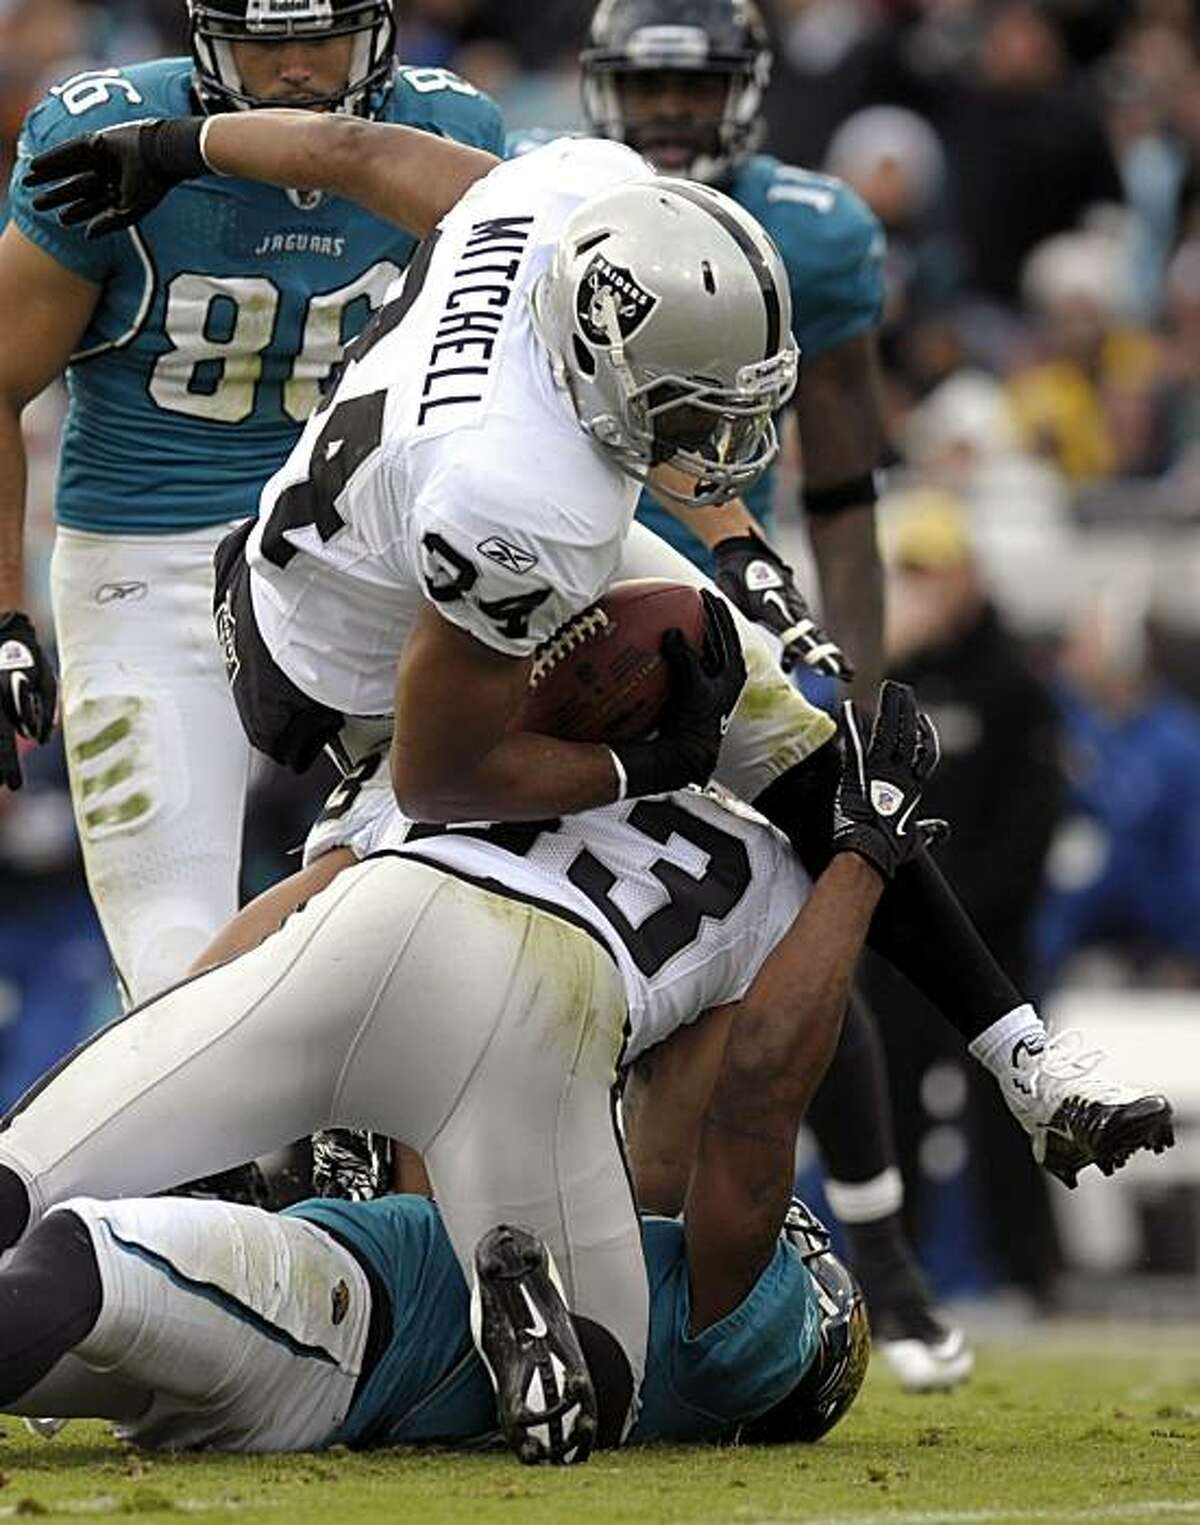 Oakland Raiders safety Mike Mitchell (34) intercepts a pass intended for Jacksonville Jaguars wide receiver Mike Thomas, bottom, after being hit by safety Tyvon Branch (33) during the first half of an NFL football game in Jacksonville, Fla., Sunday, Dec.12, 2010.